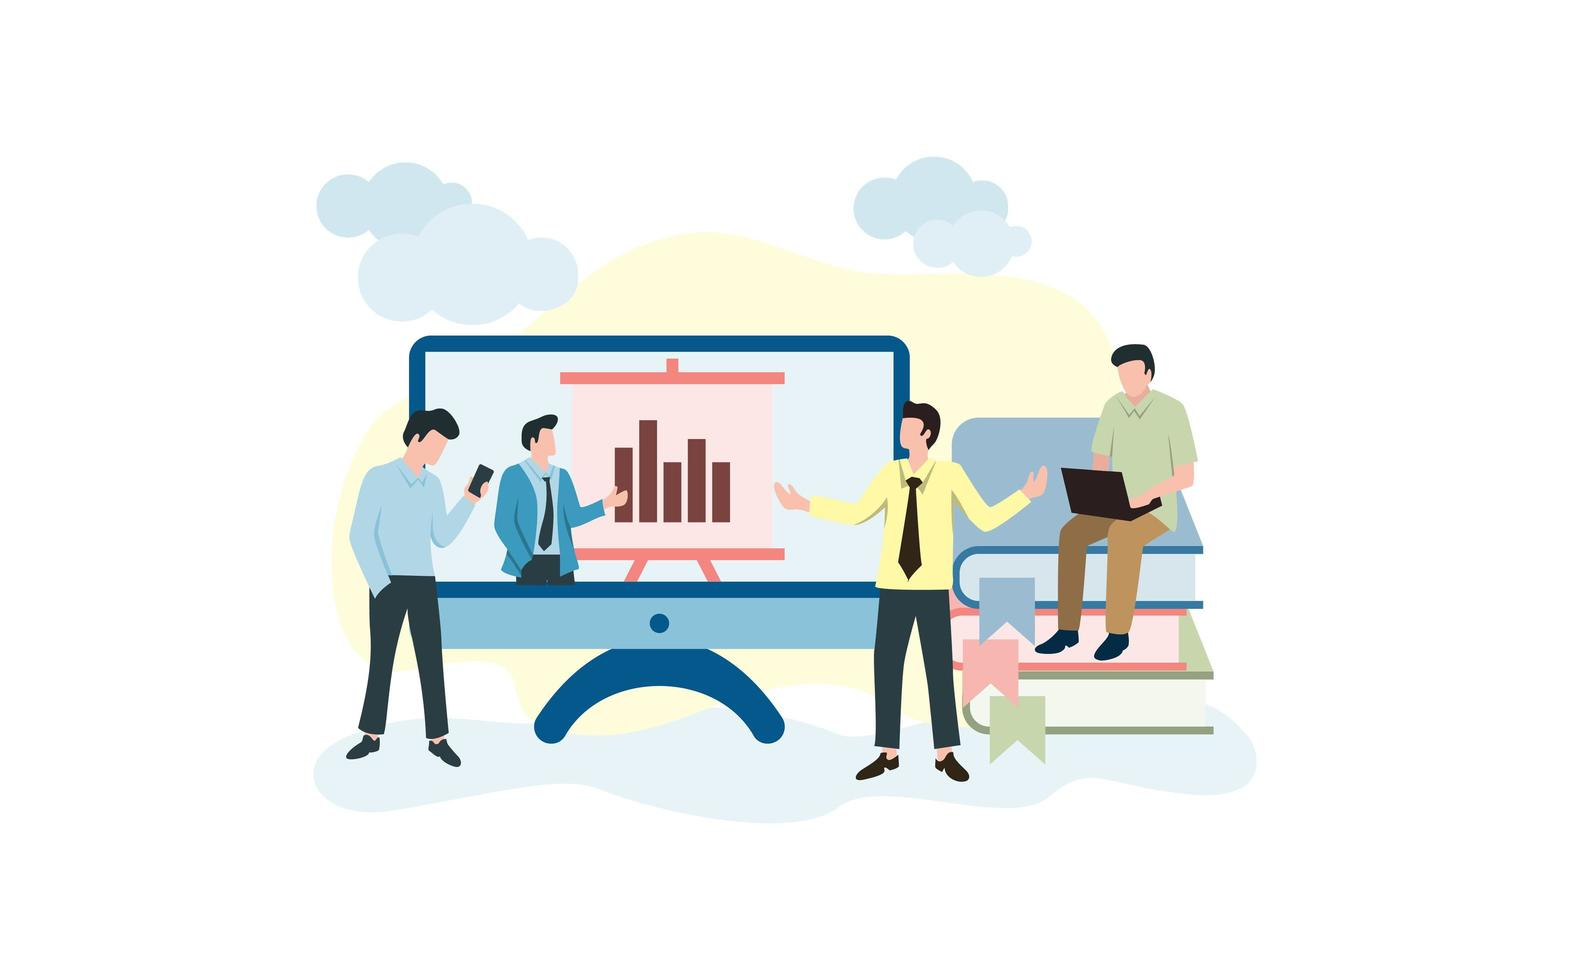 People activity related to online presentation vector